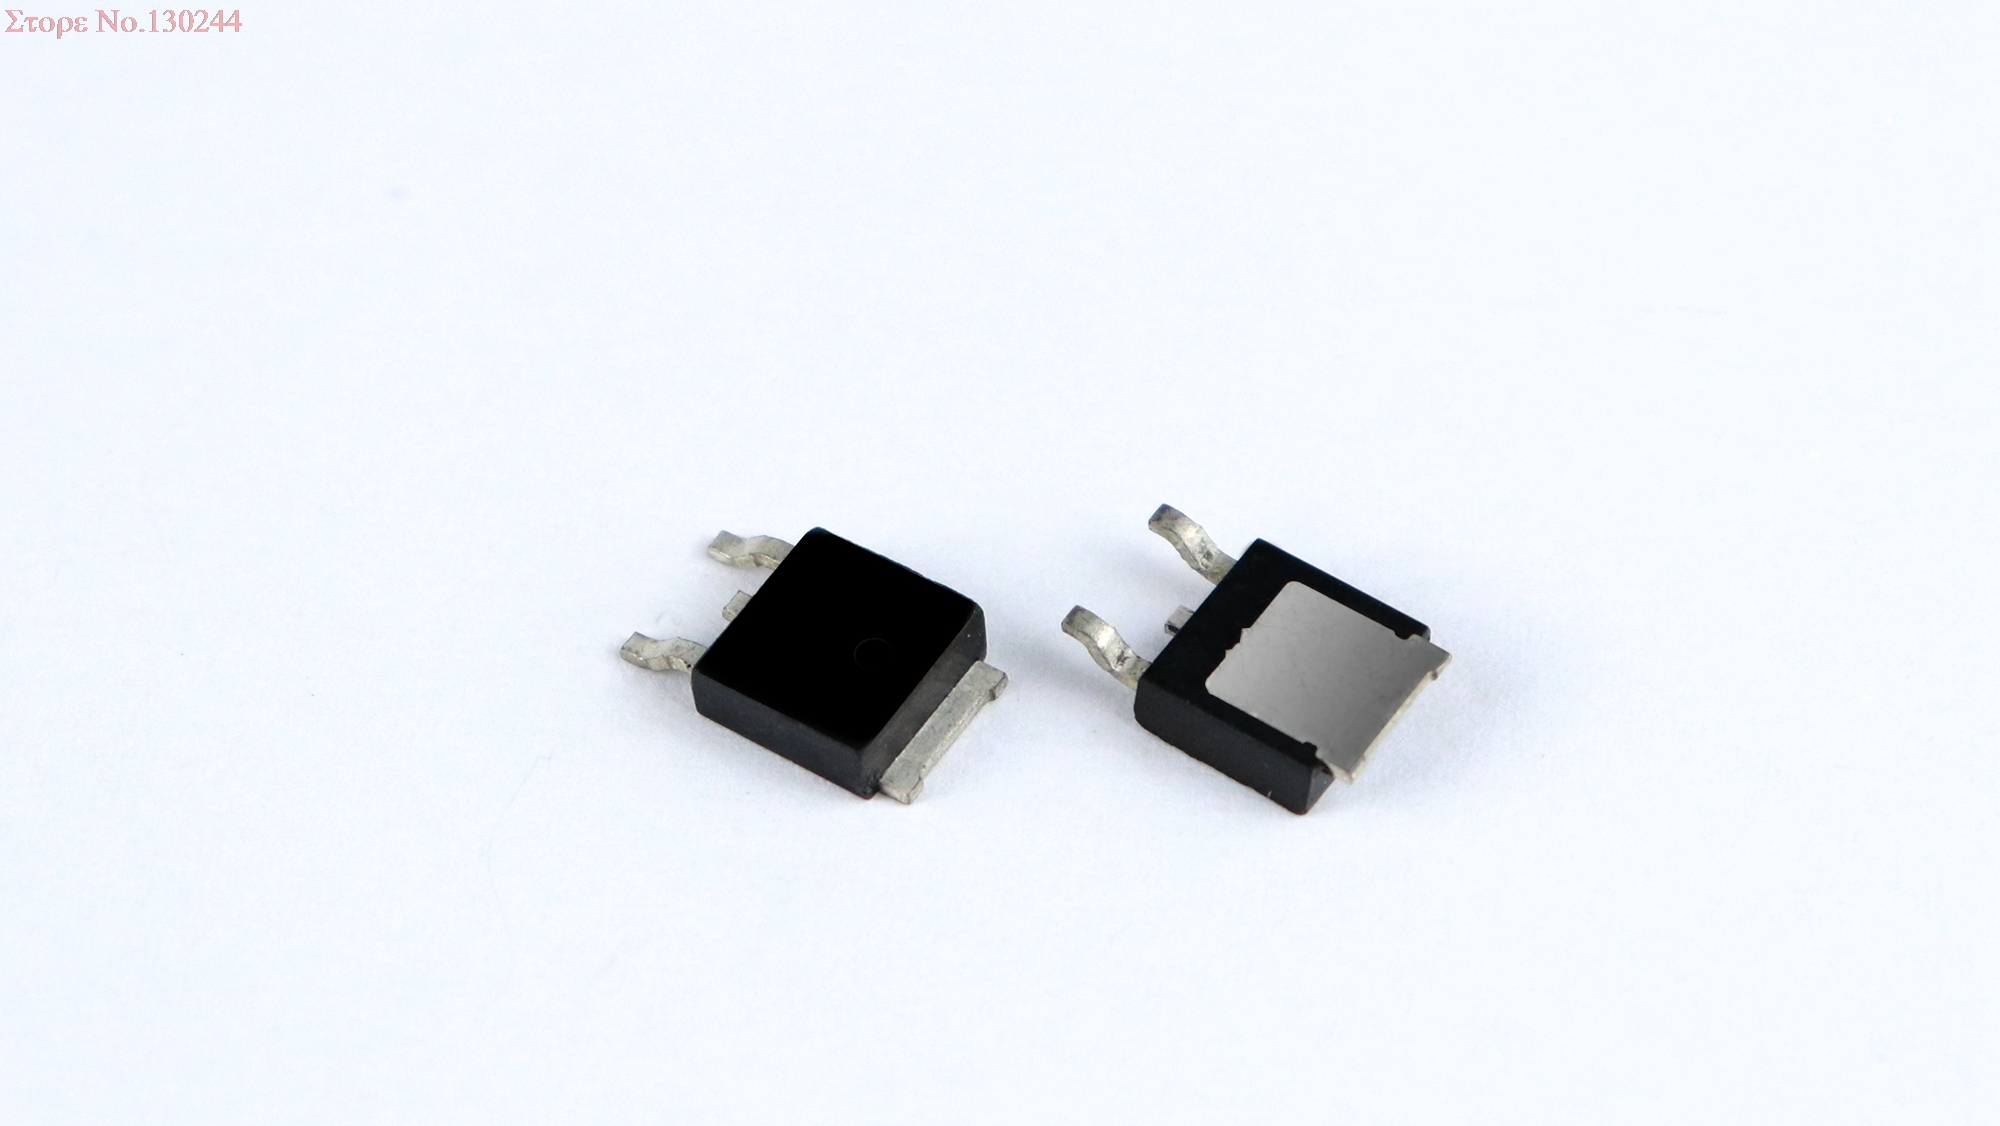 10pcs/lot SM2082C SM2082D SM2082 TO-252 New And Original In Stock